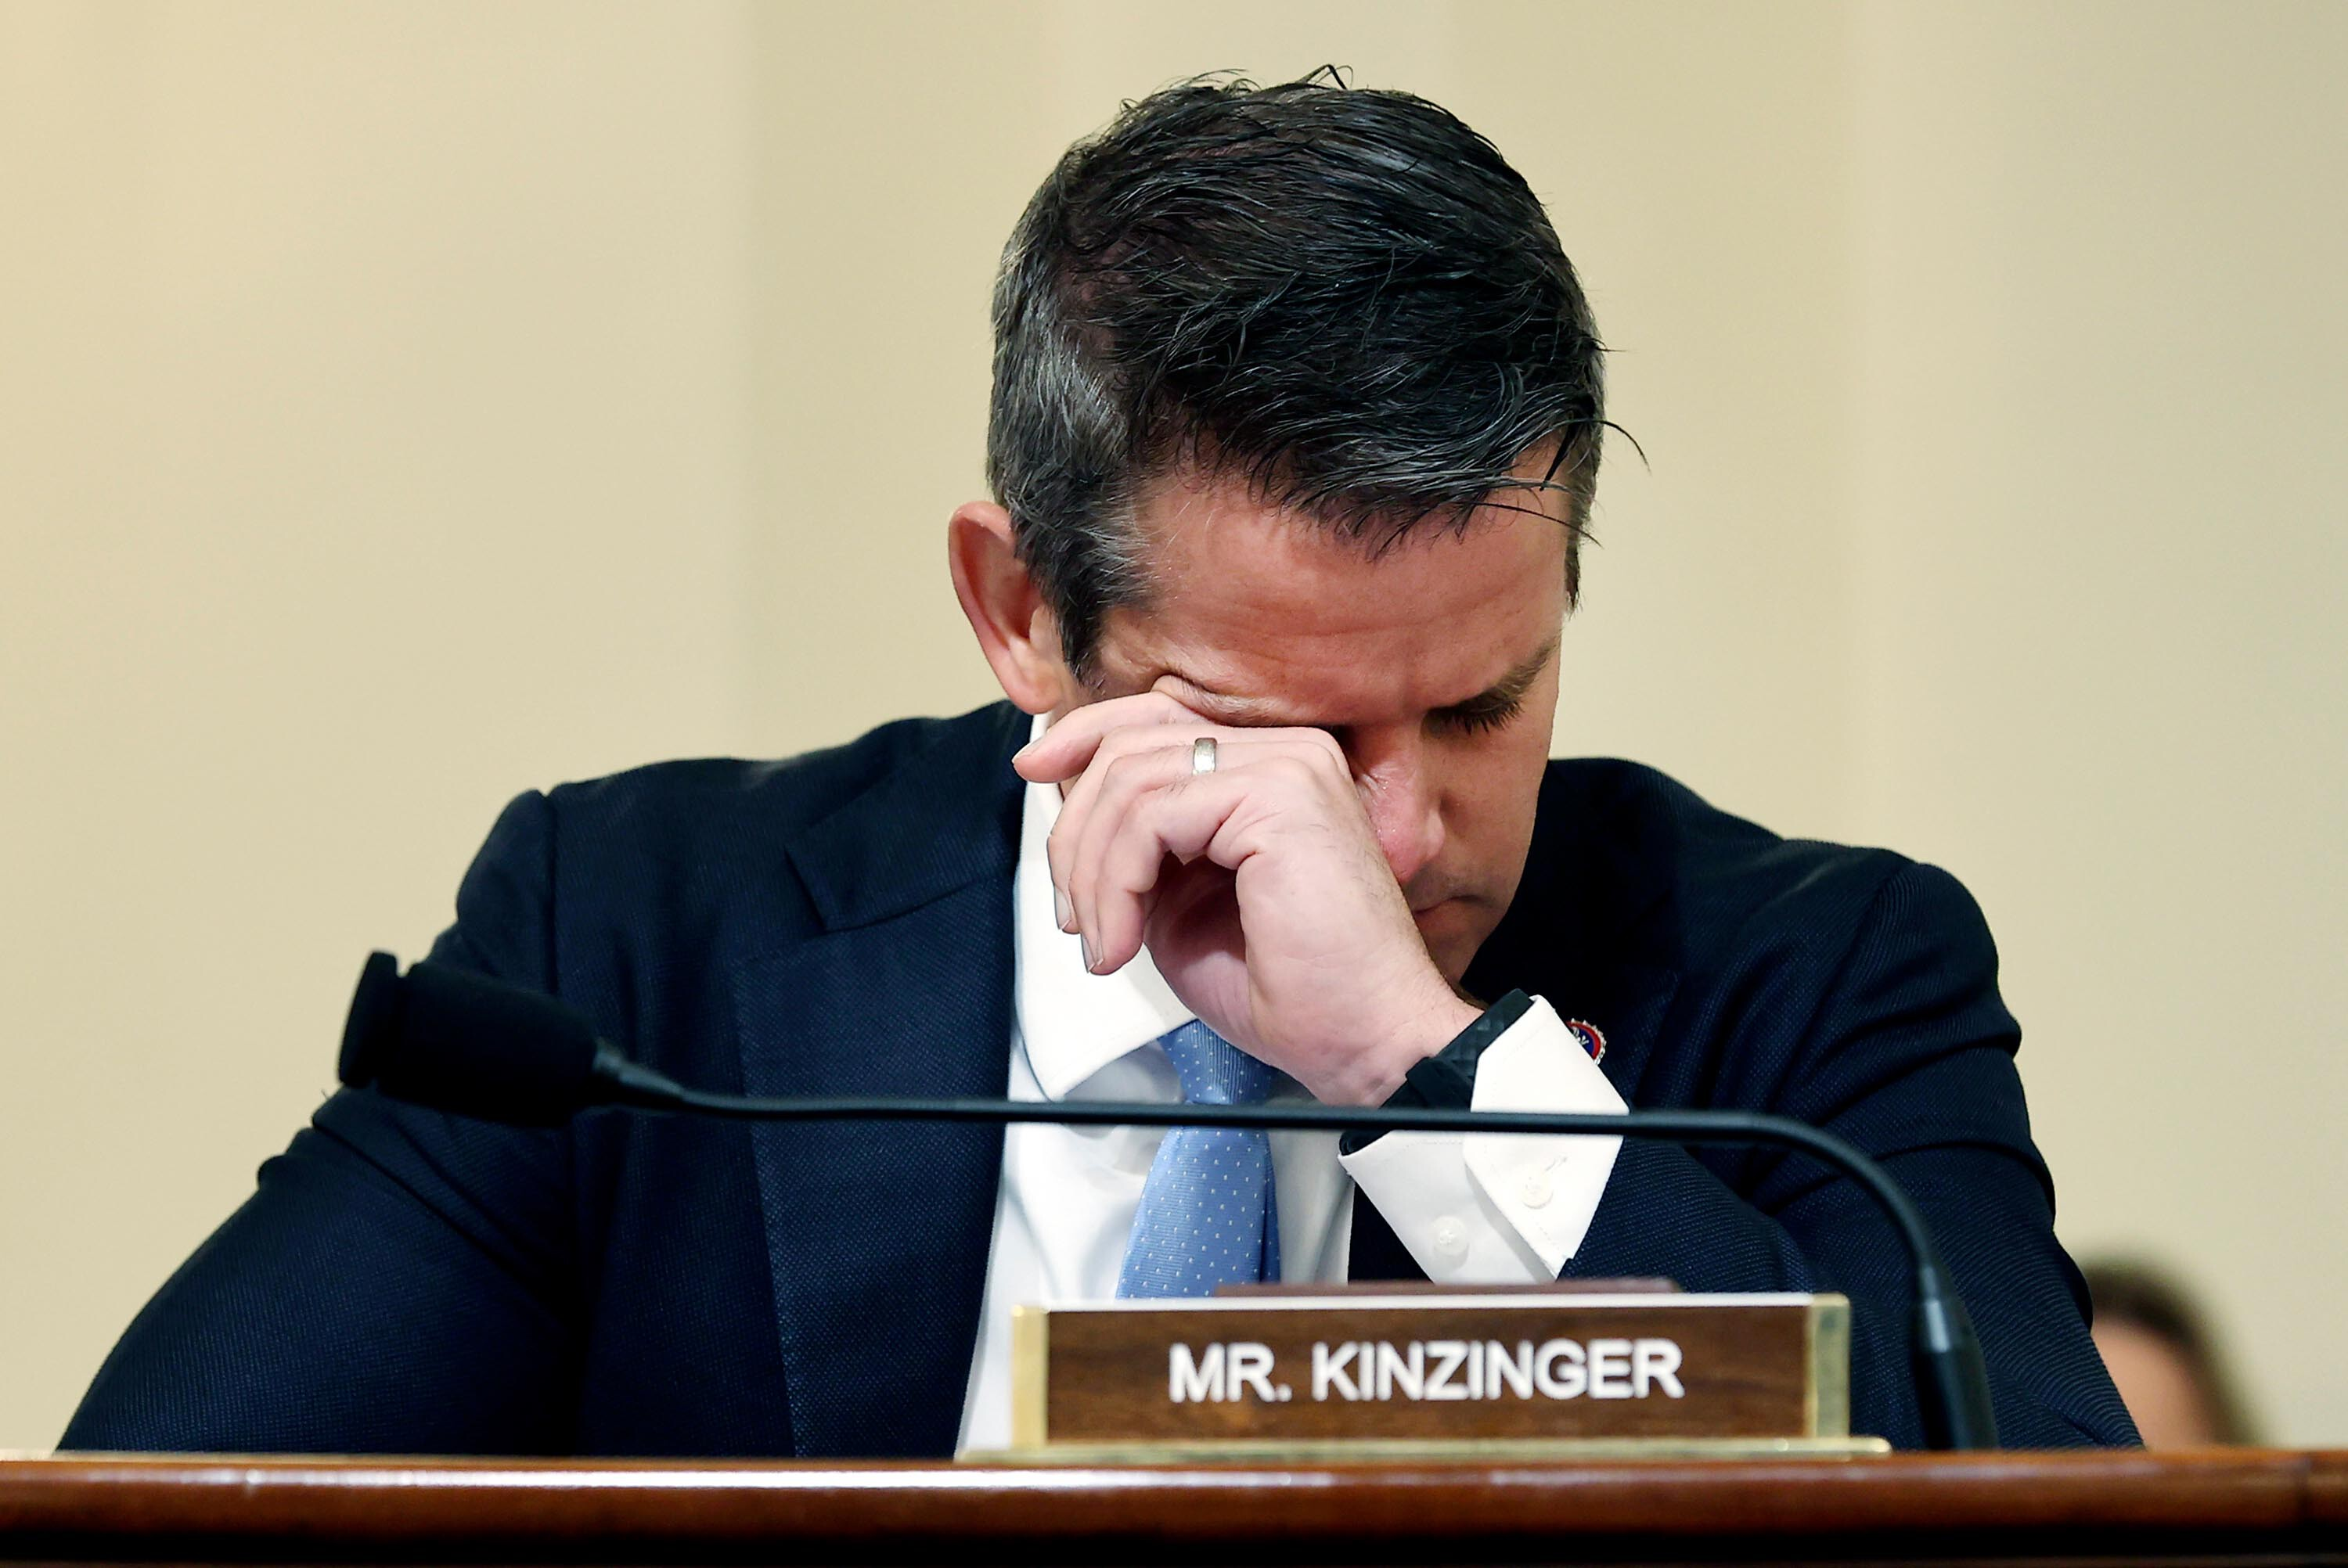 Read: Rep. Adam Kinzinger's opening remarks at first hearing for select committee on Jan. 6